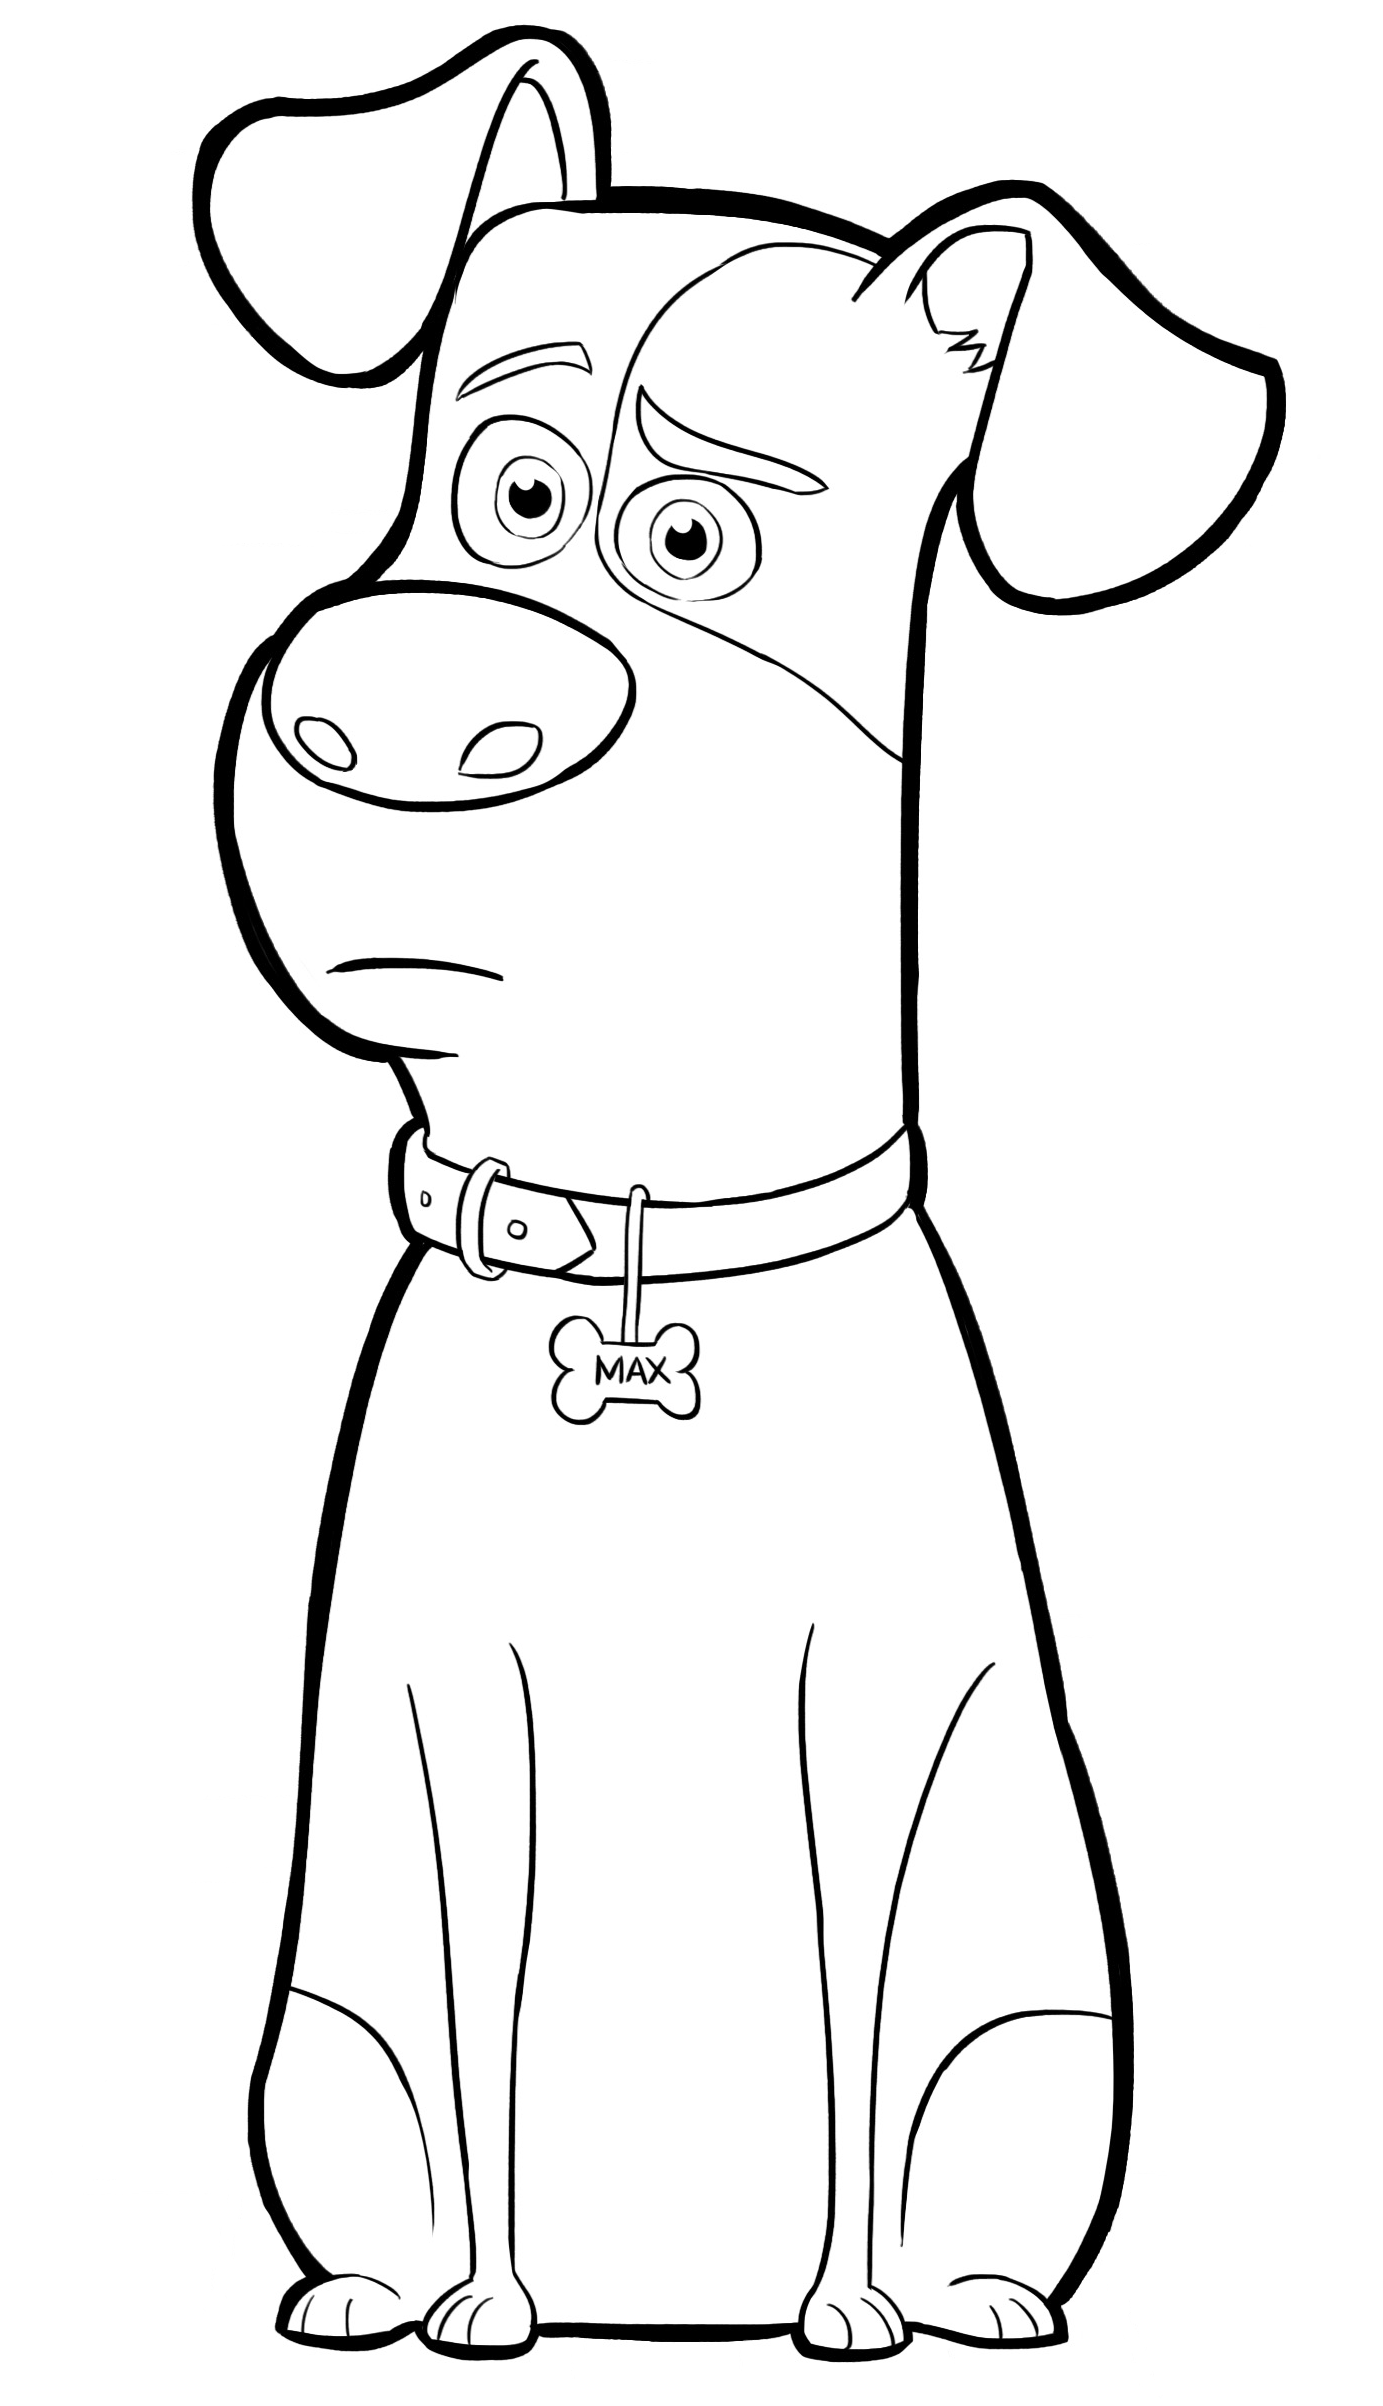 pintable coloring pages - photo#4